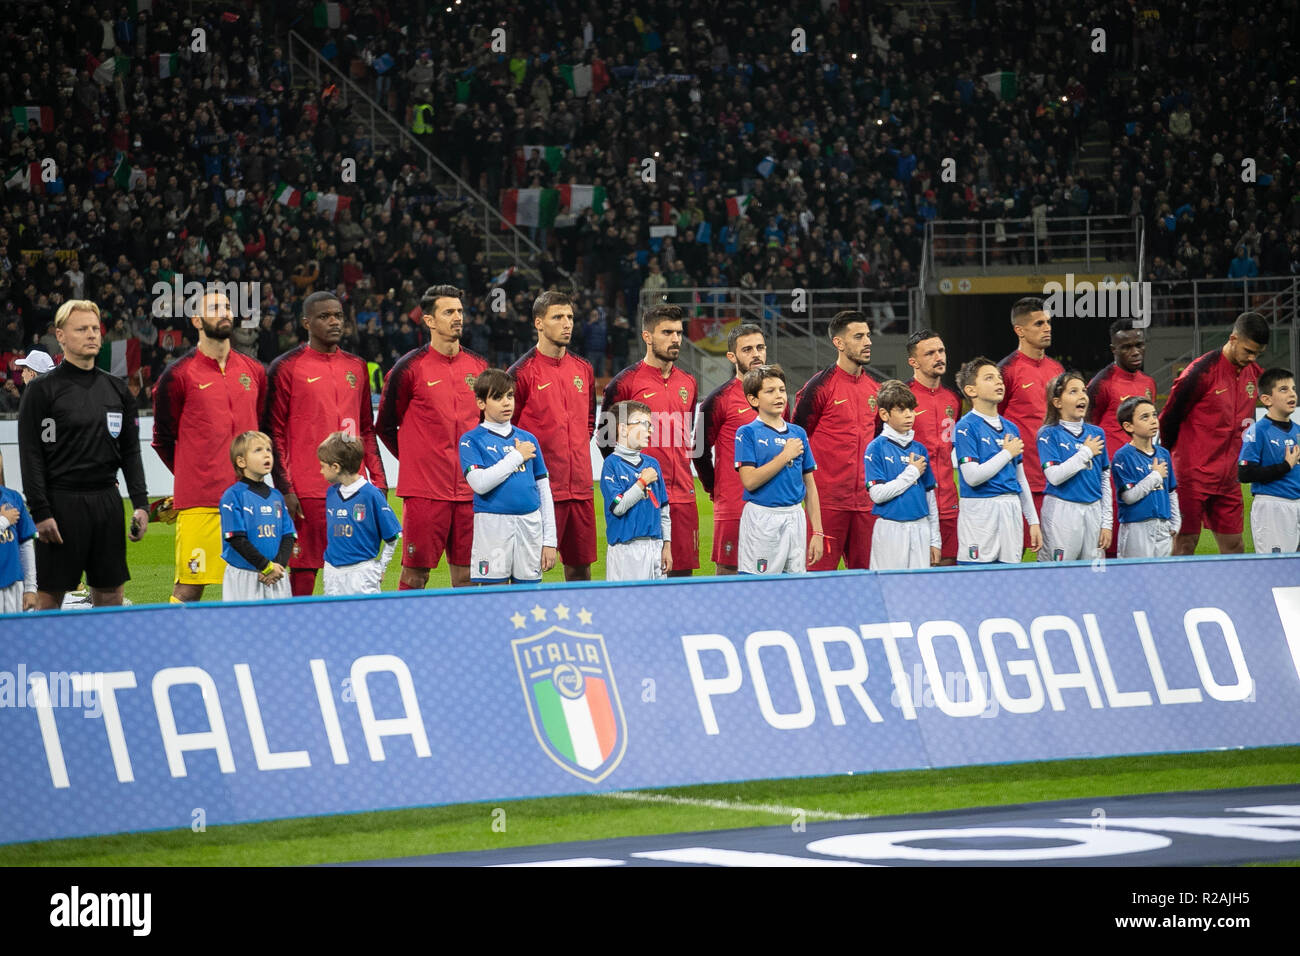 Milan, Italy. 17th Nov, 2018. Team Portugal  during the UEFA Nations League 2018, League A, Group 3 football match between Italy and Portugal on November 17, 2018 at Giuseppe Meazza stadium in Milan, Italy - Photo Laurent Lairys / DPPI Credit: Laurent Lairys/Agence Locevaphotos/Alamy Live News Stock Photo